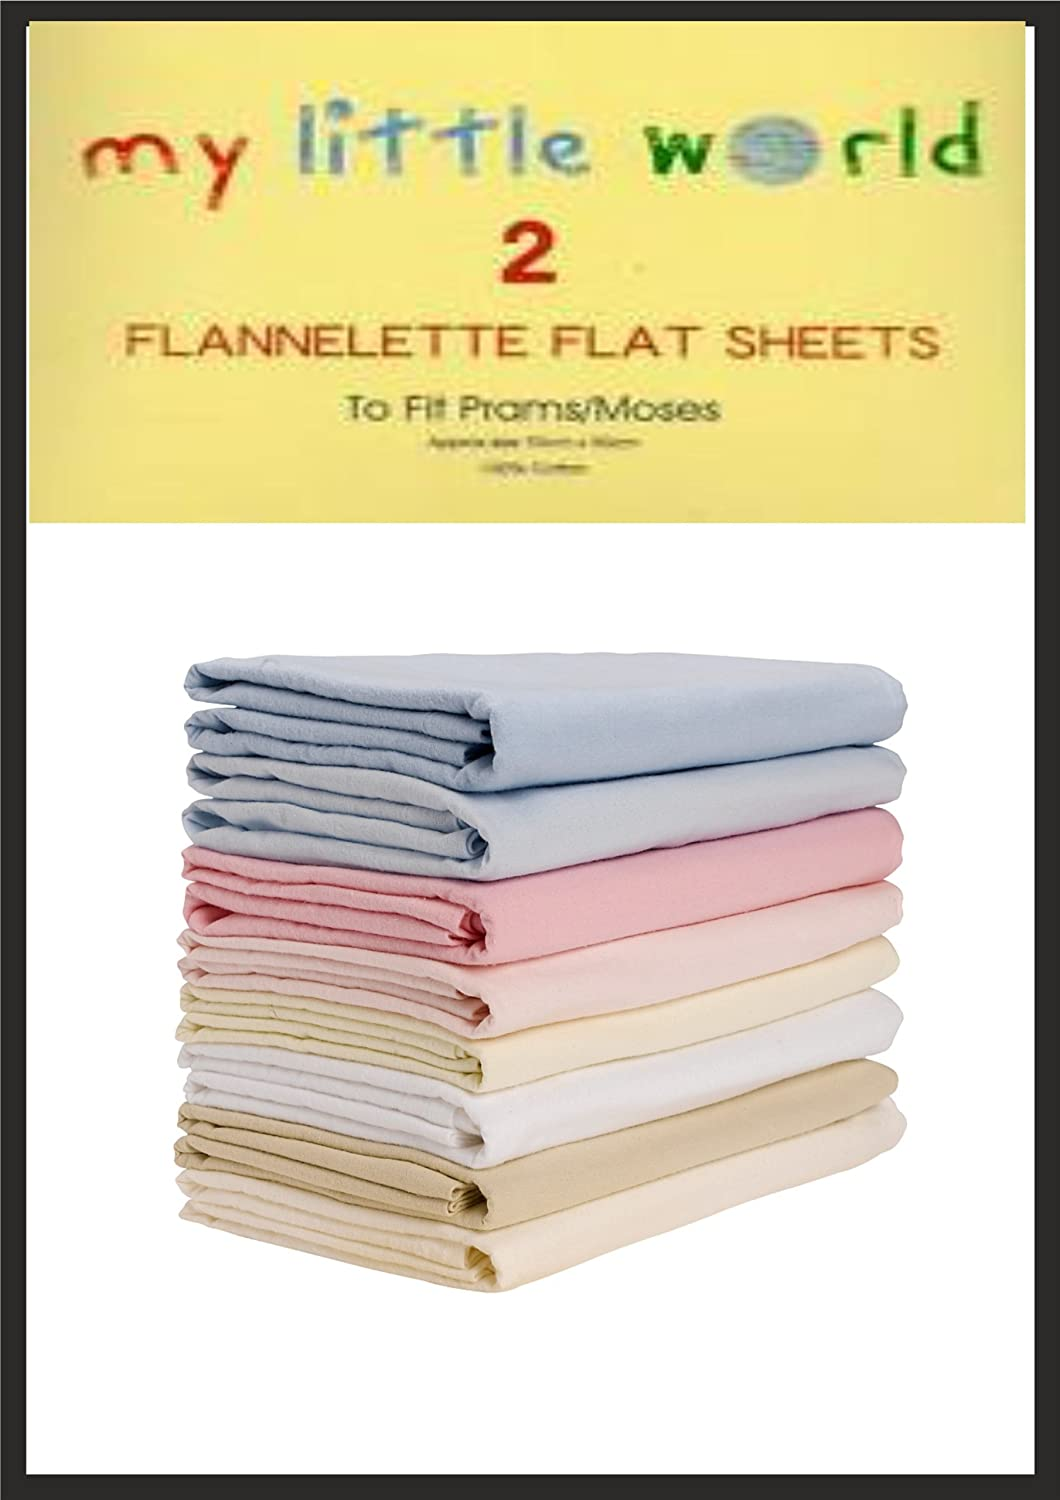 Pram / Moses Basket Blue Flannelette Flat Sheets Baby Nursery Bedding Soft Touch Pack of 2 100% Cotton My Little World 5029497700236